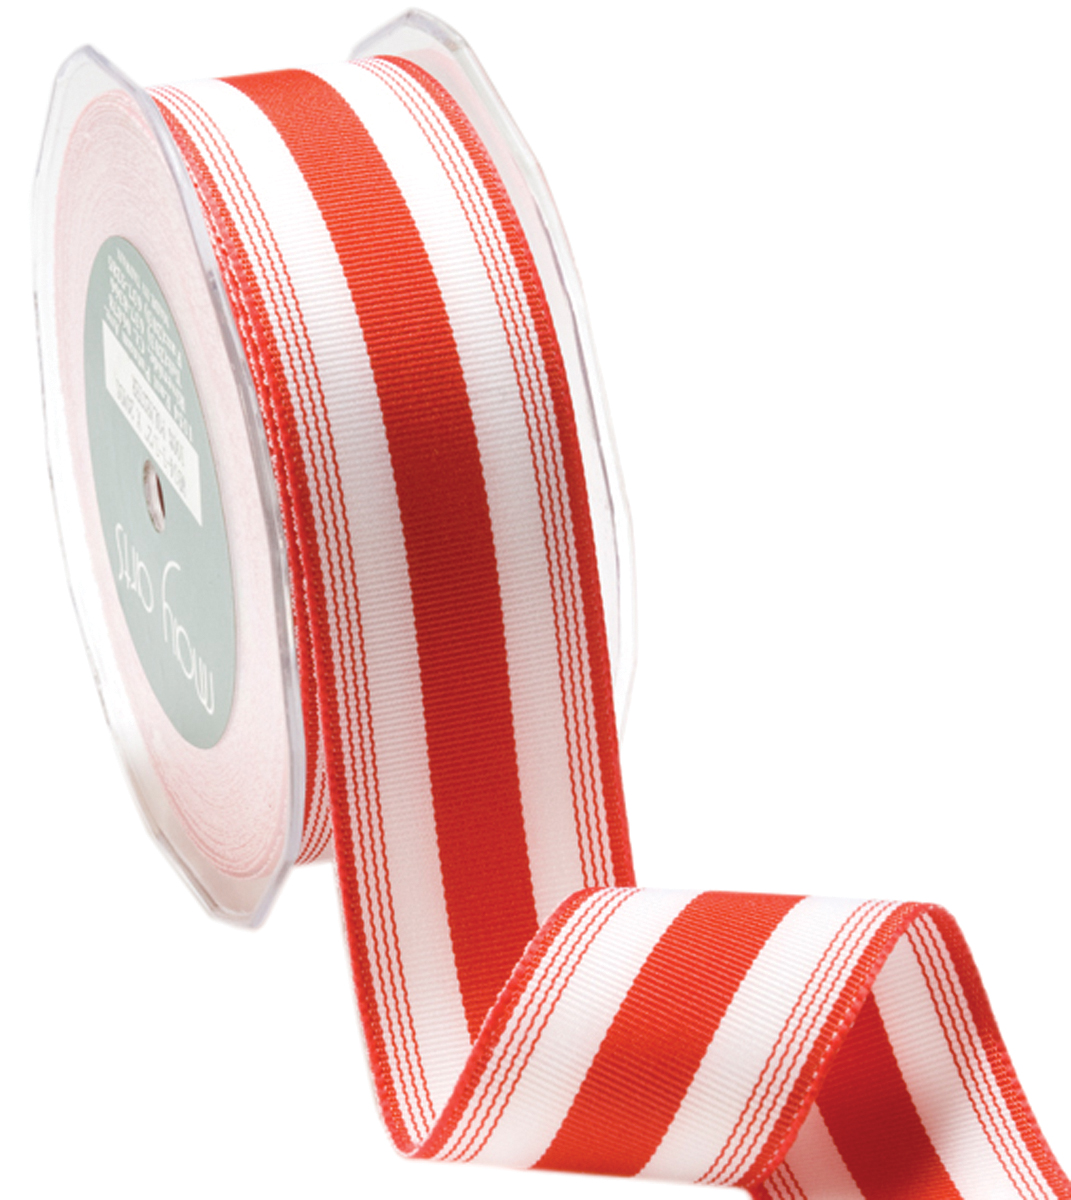 Striped Grosgrain Ribbon 3/8 Inch X 50 Yards-Red/White